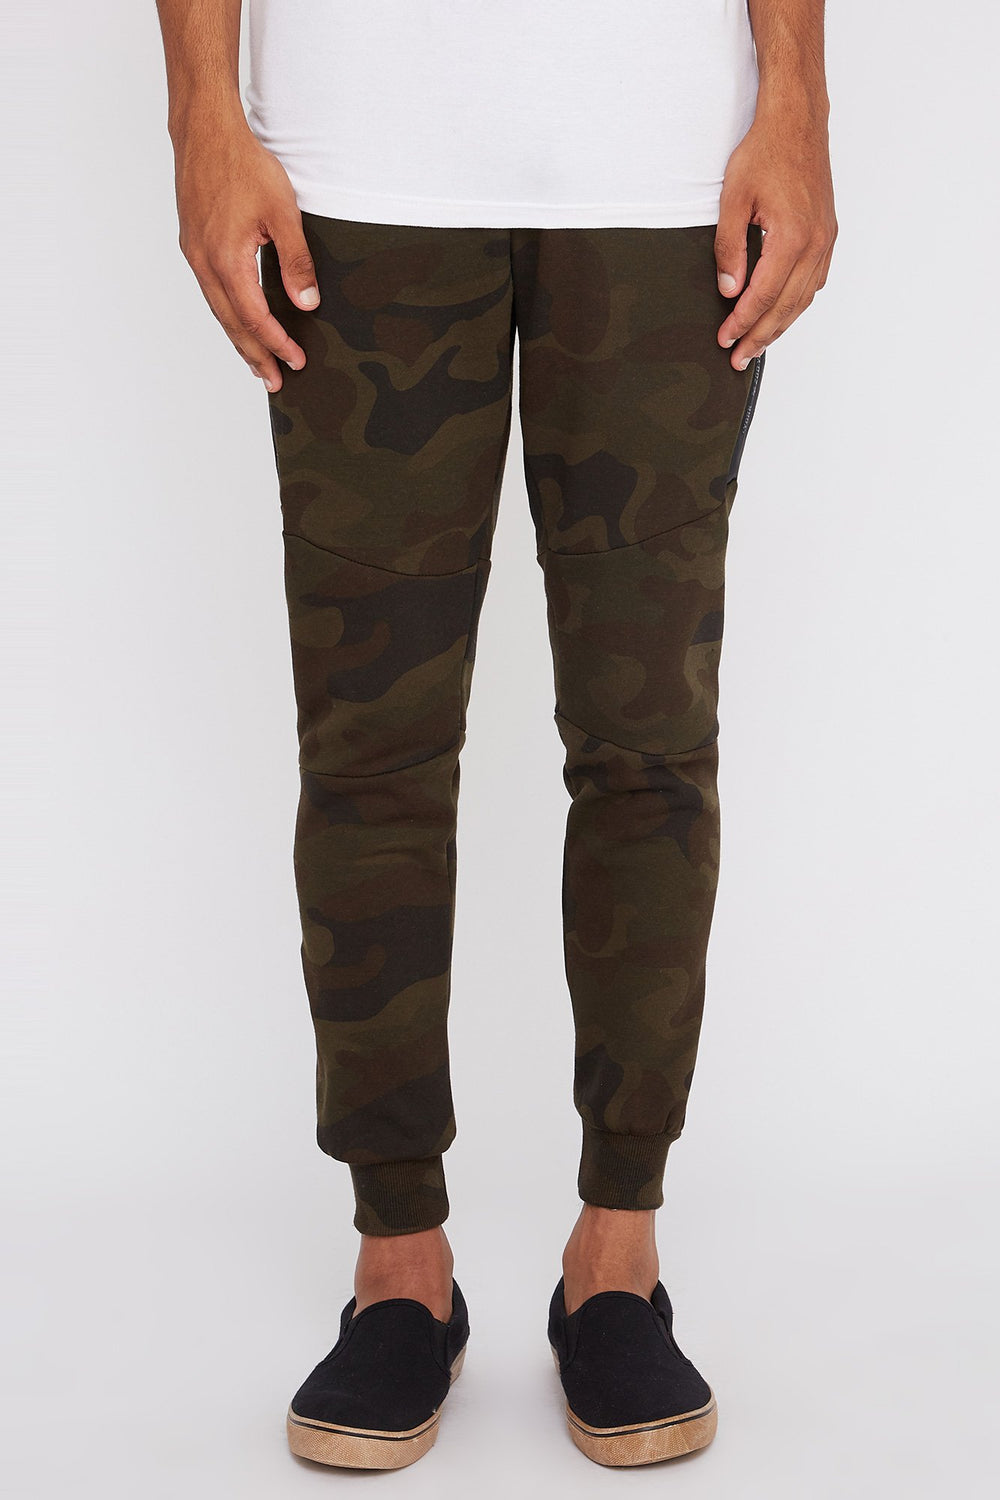 Zoo York Mens Camo Side Zipper Jogger Camouflage